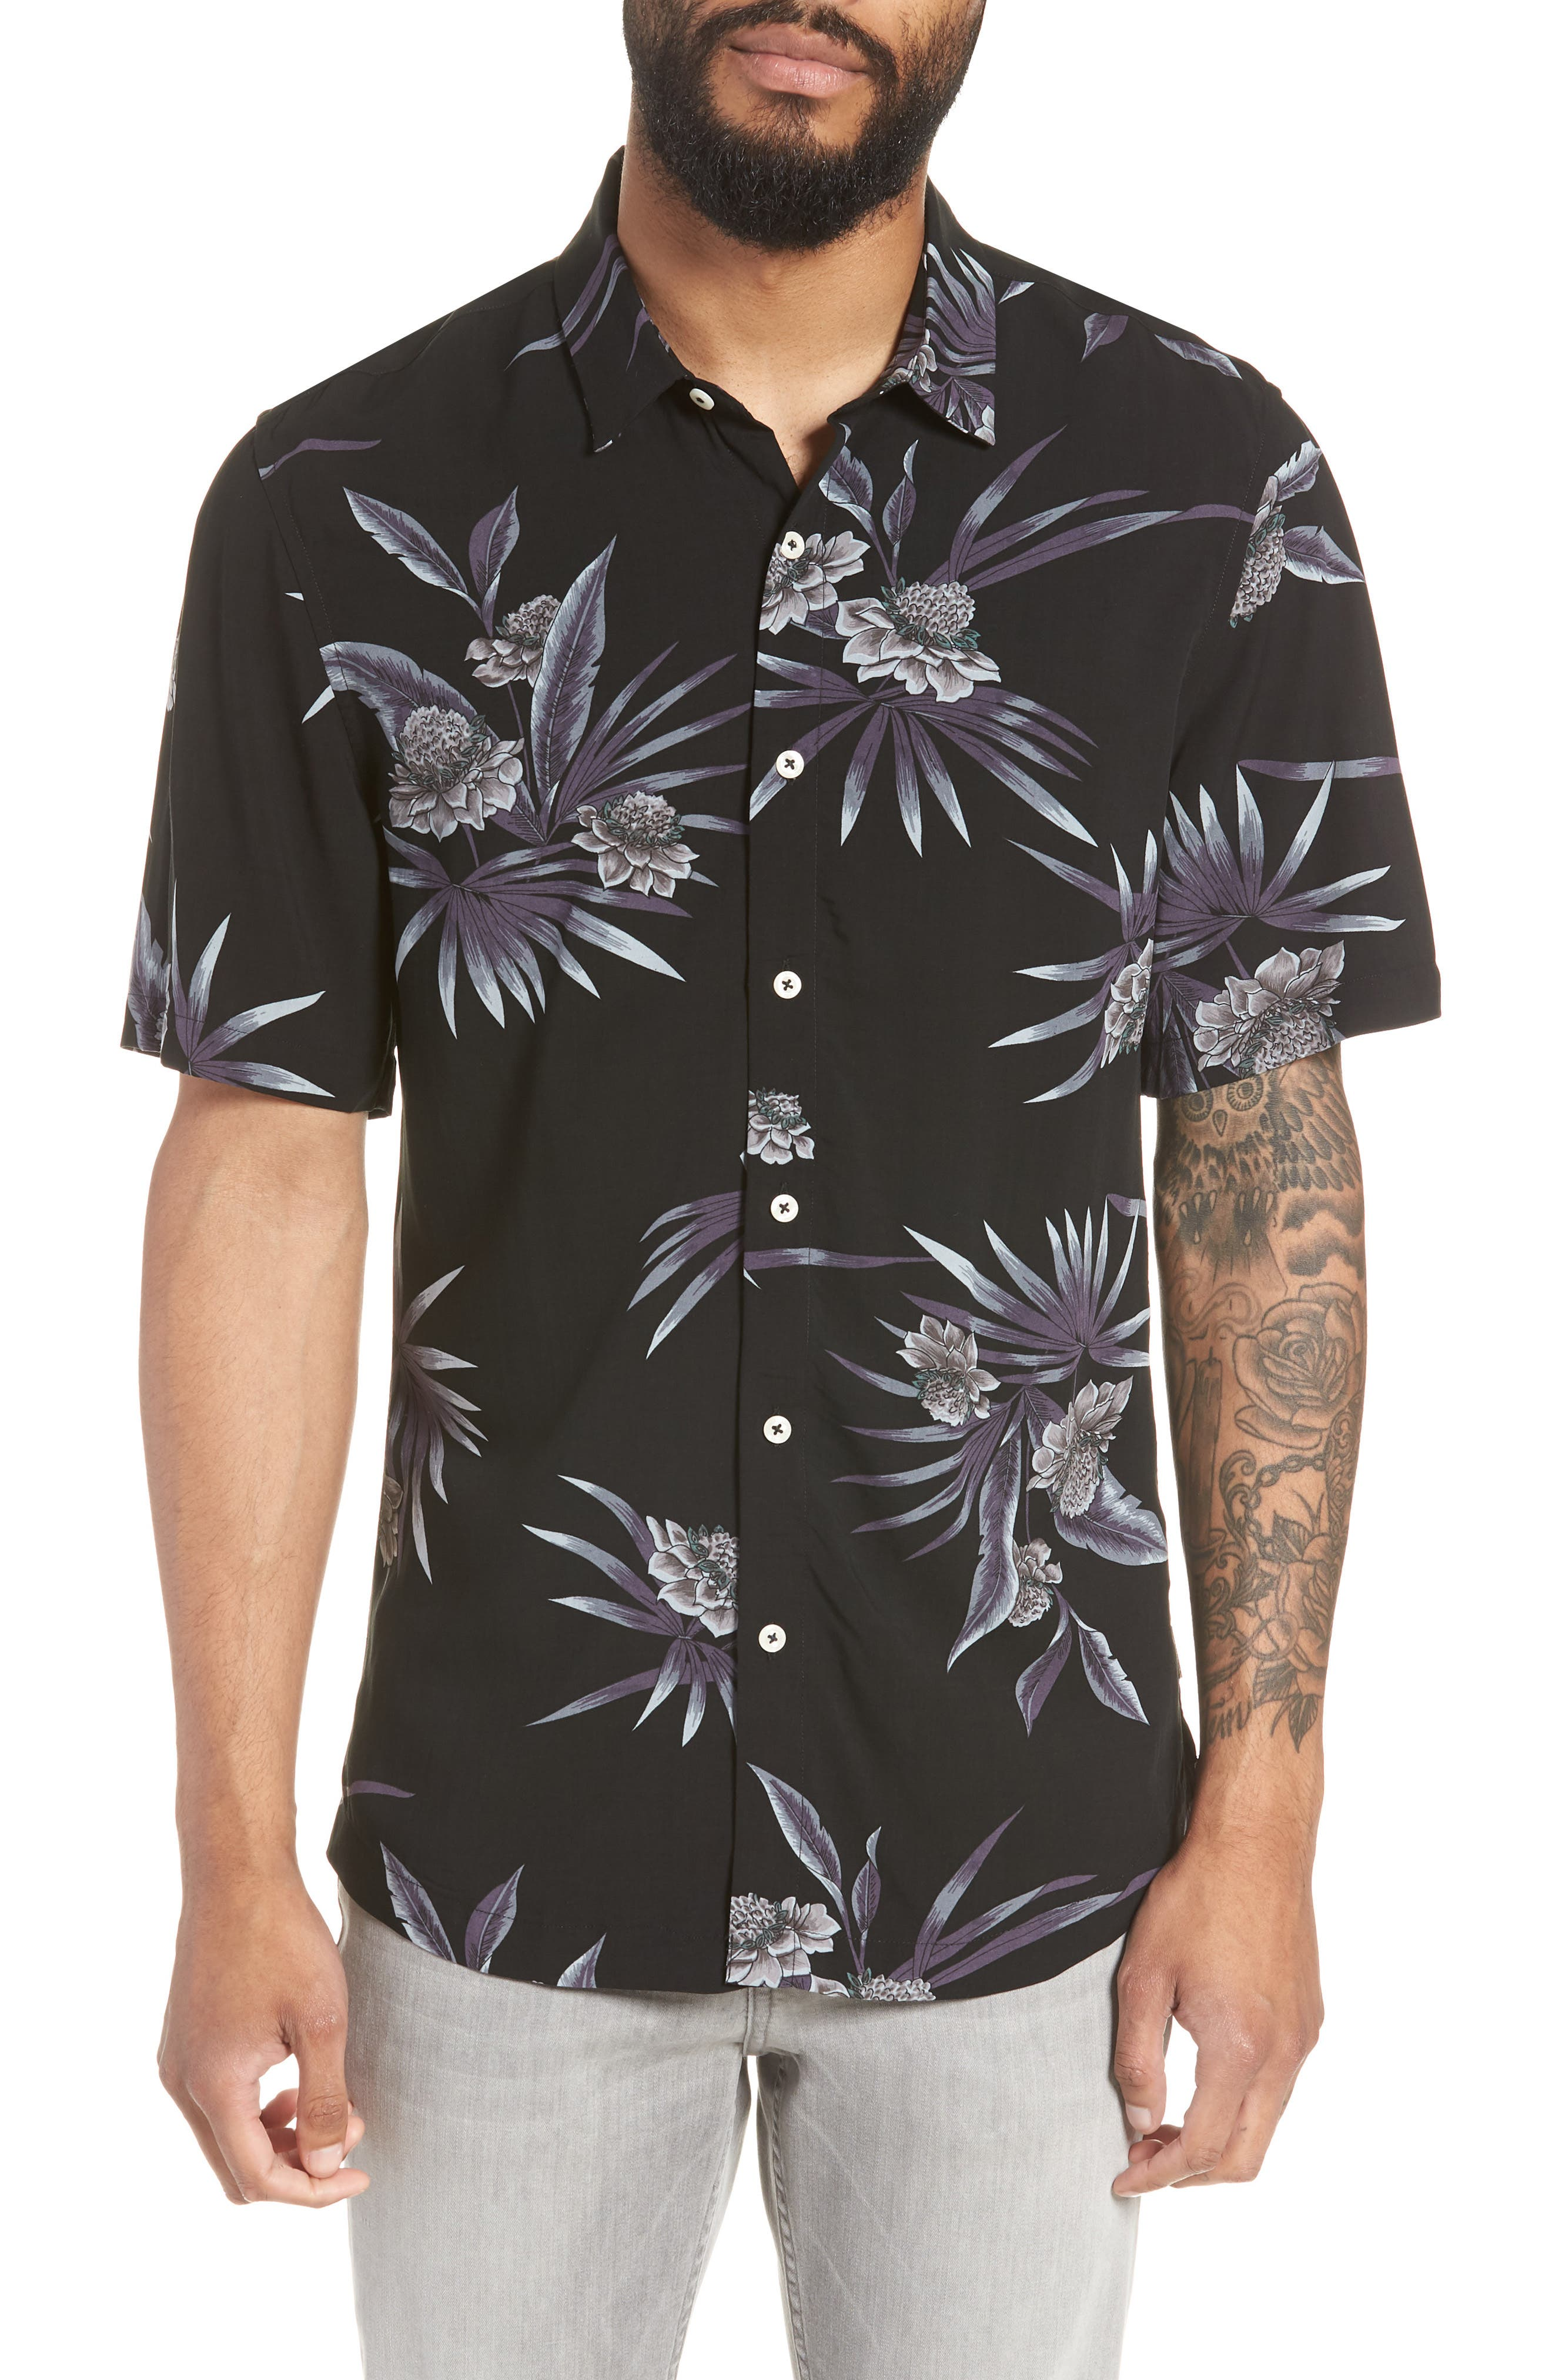 There After Trim Fit Short Sleeve Sport Shirt,                             Main thumbnail 1, color,                             001